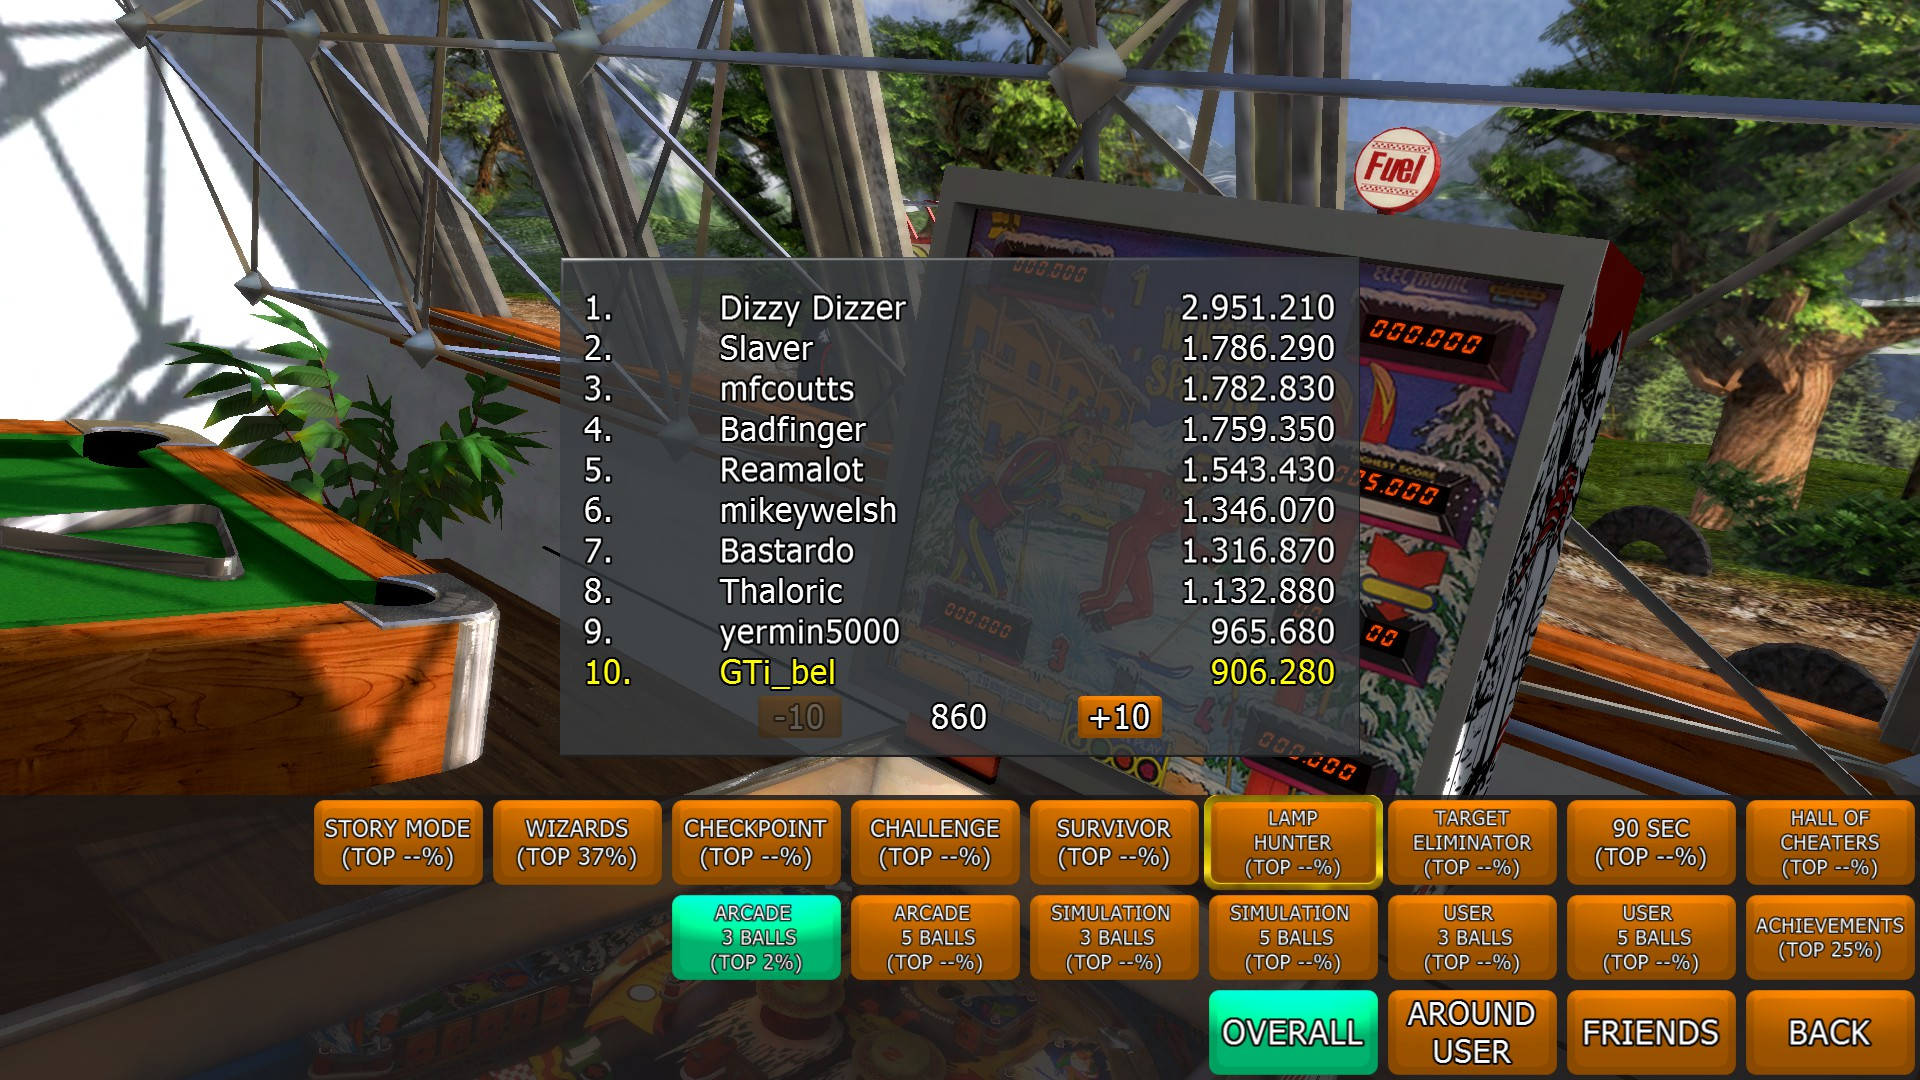 GTibel: Zaccaria Pinball: Winter Sports [3 balls] (PC) 906,280 points on 2017-09-25 05:10:58